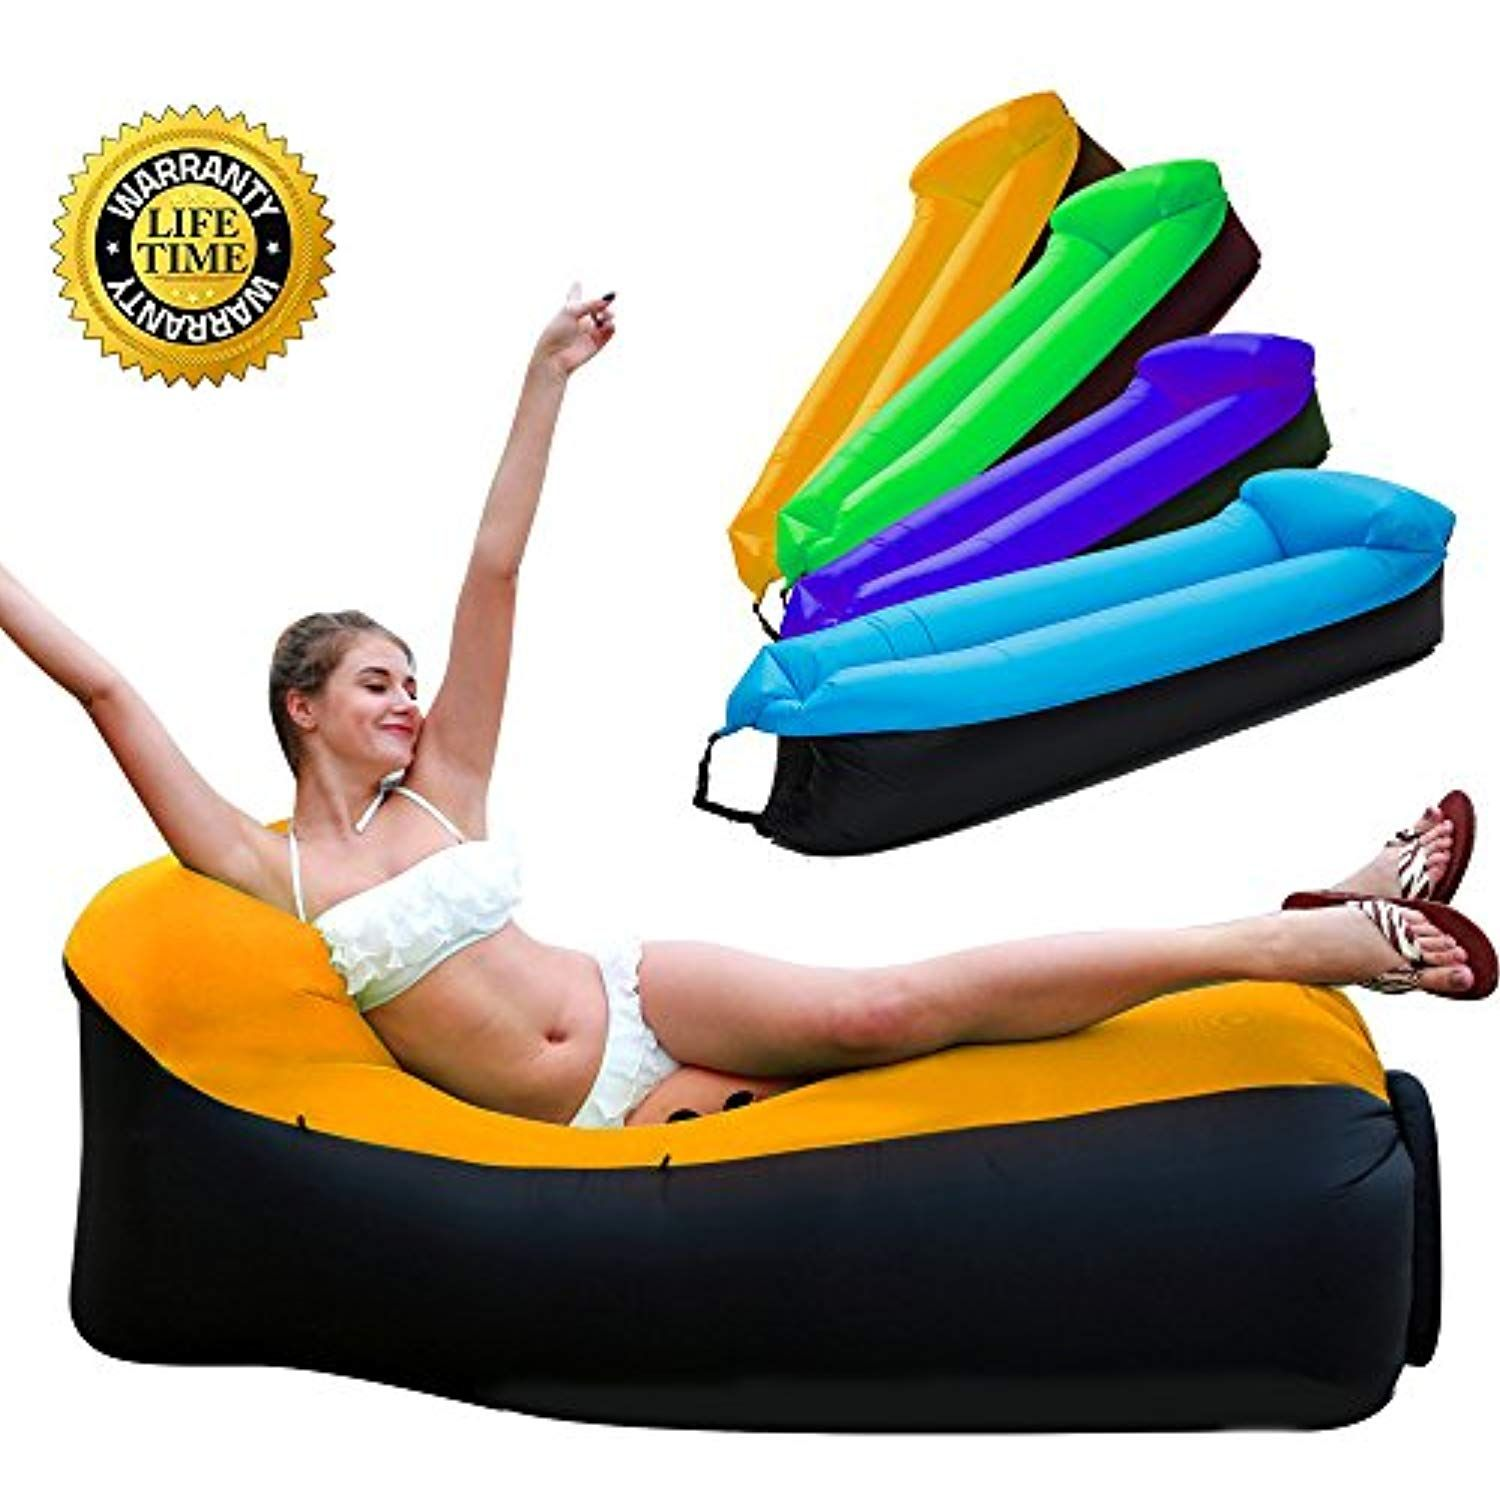 Inflatable Lounger Inflatable Couch Air Lounger Air Chair Lounger